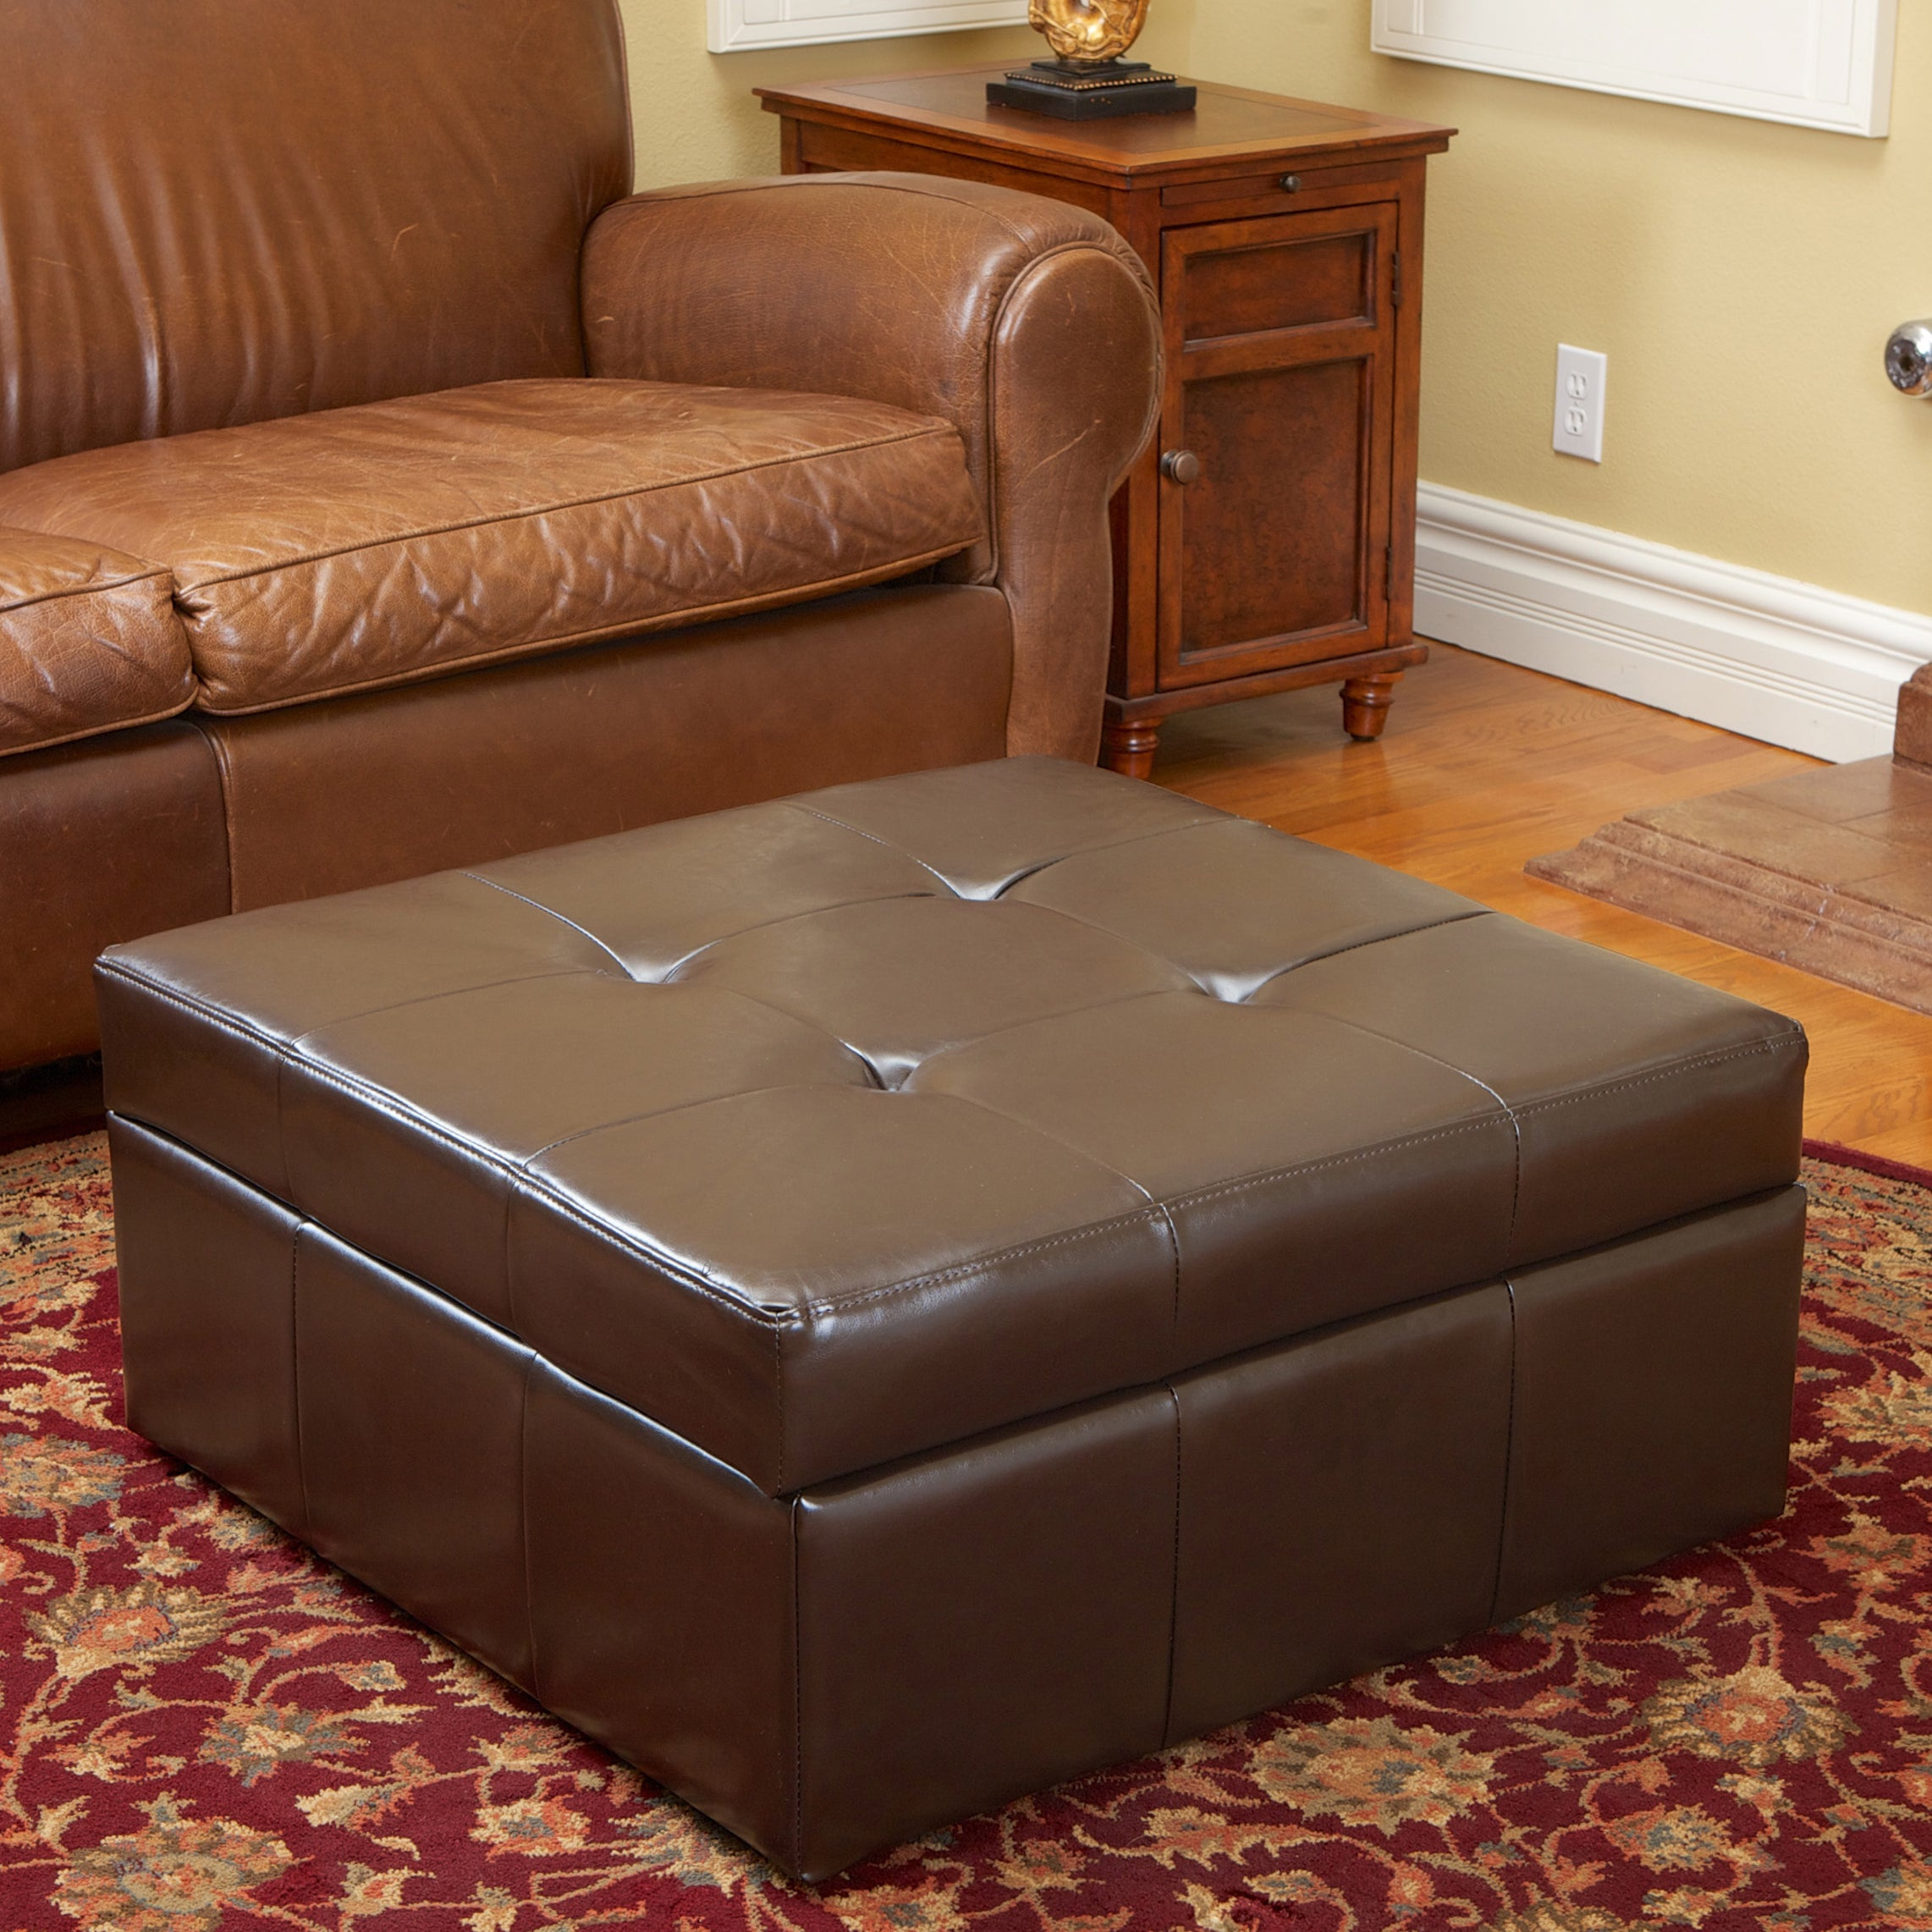 buy online 8ab9c 66392 Chatsworth Contemporary Tufted Bonded Leather Storage Ottoman with Rolling  Casters by Christopher Knight Home